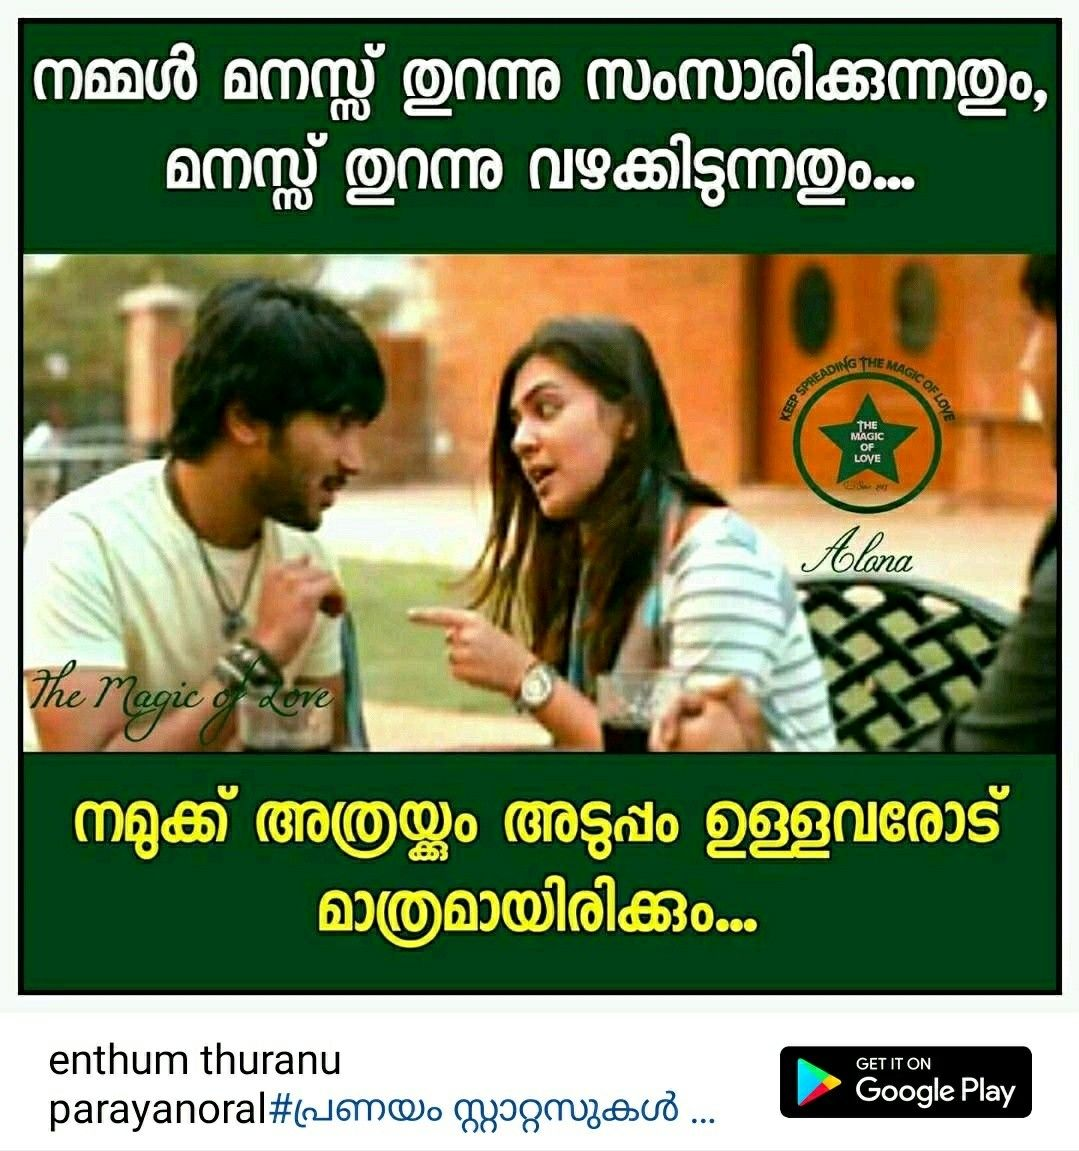 Boy and girl friendship quotes in malayalam